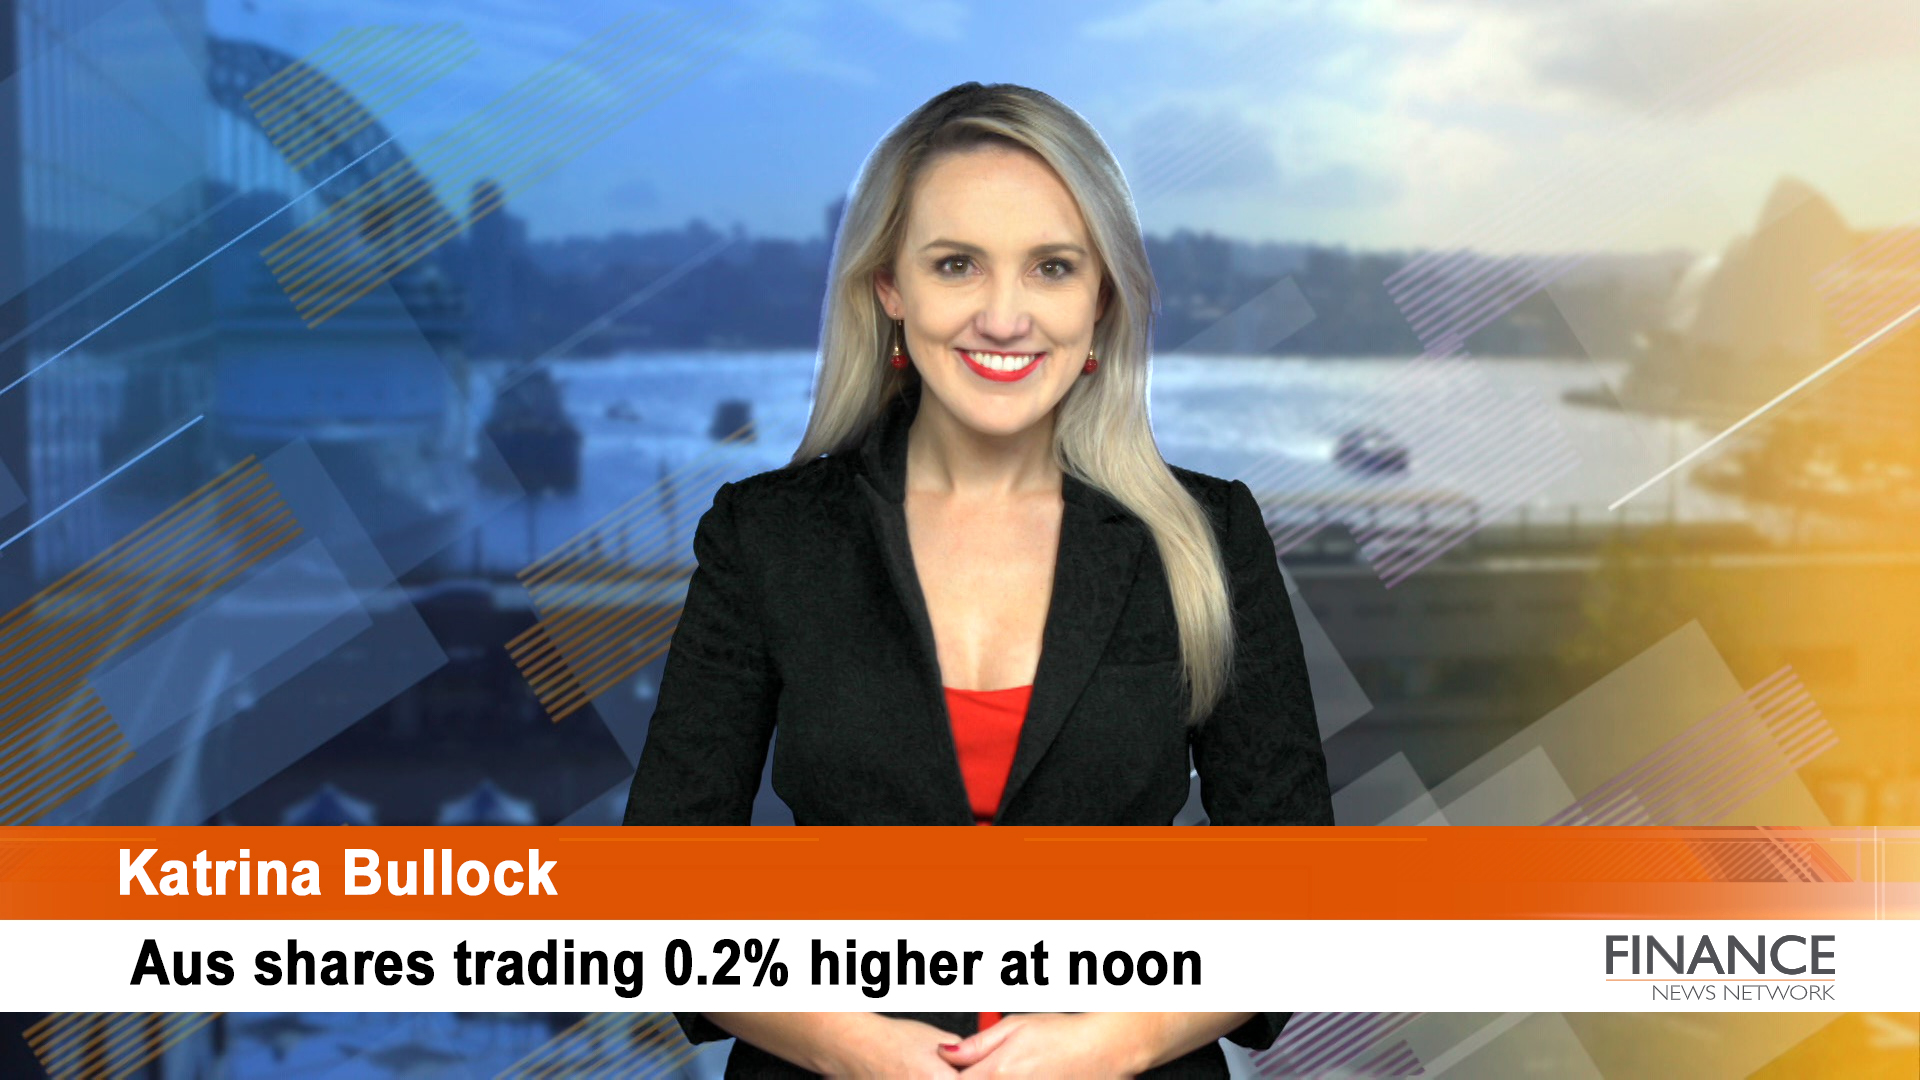 Private sector credit grows 2.5% year to Oct: Aus shares 0.2% higher at noon